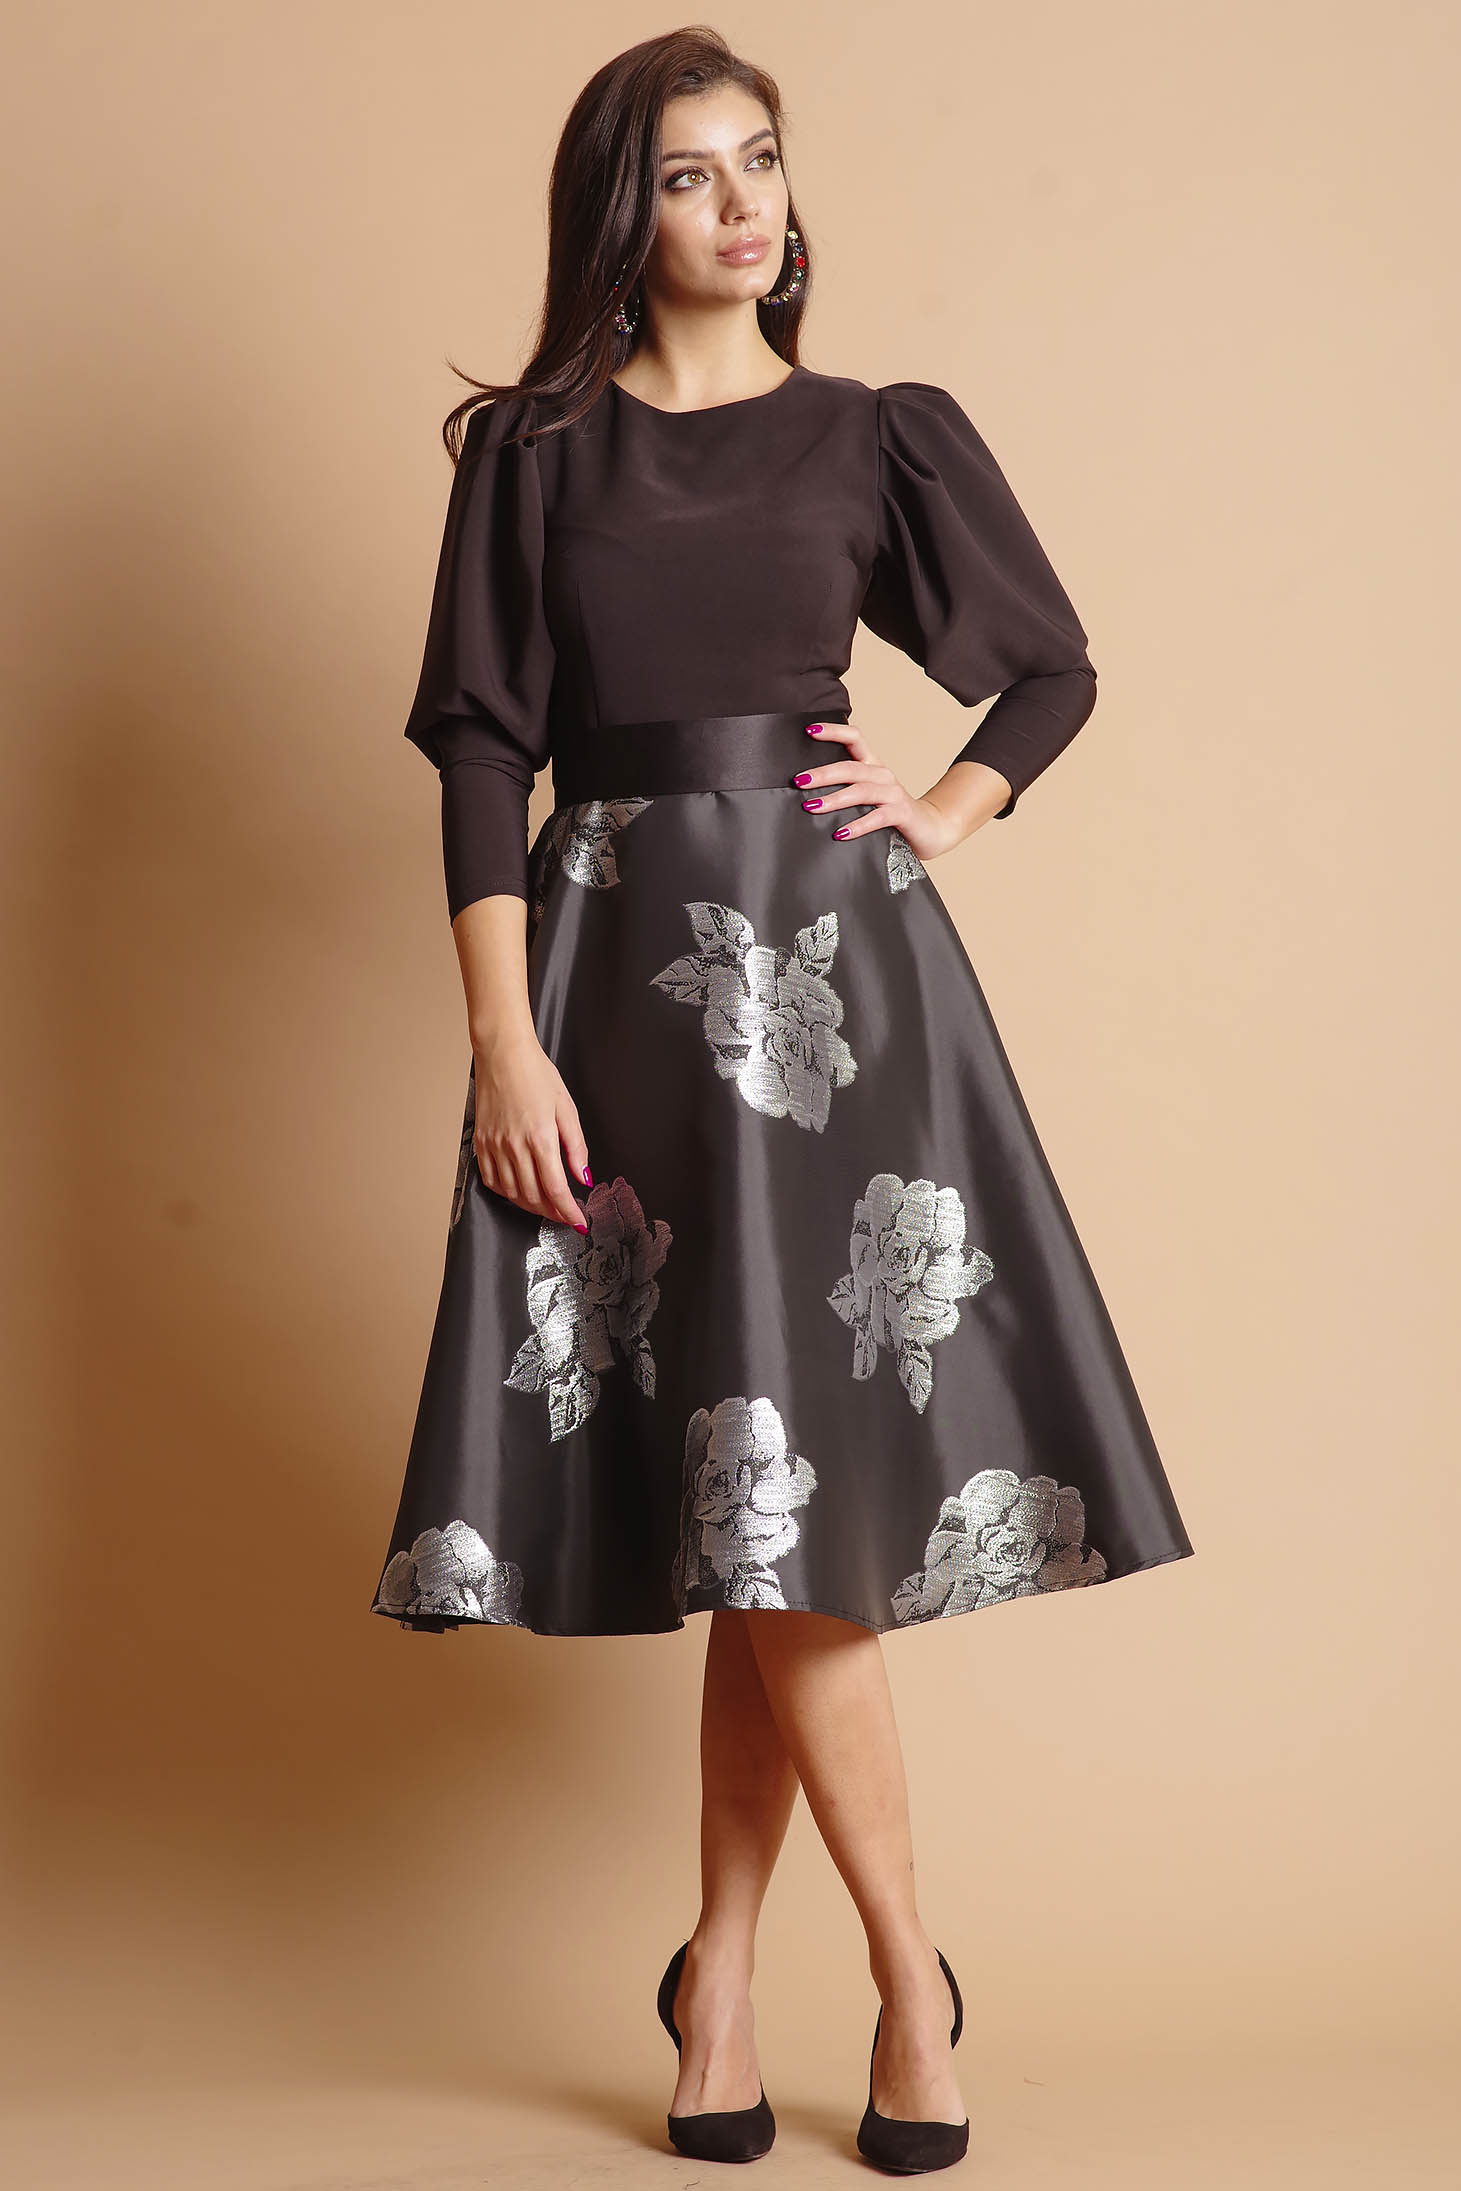 Dress silver cloche occasional with floral print long sleeved accessorized with tied waistband short lining under the skirt back zipper fastening